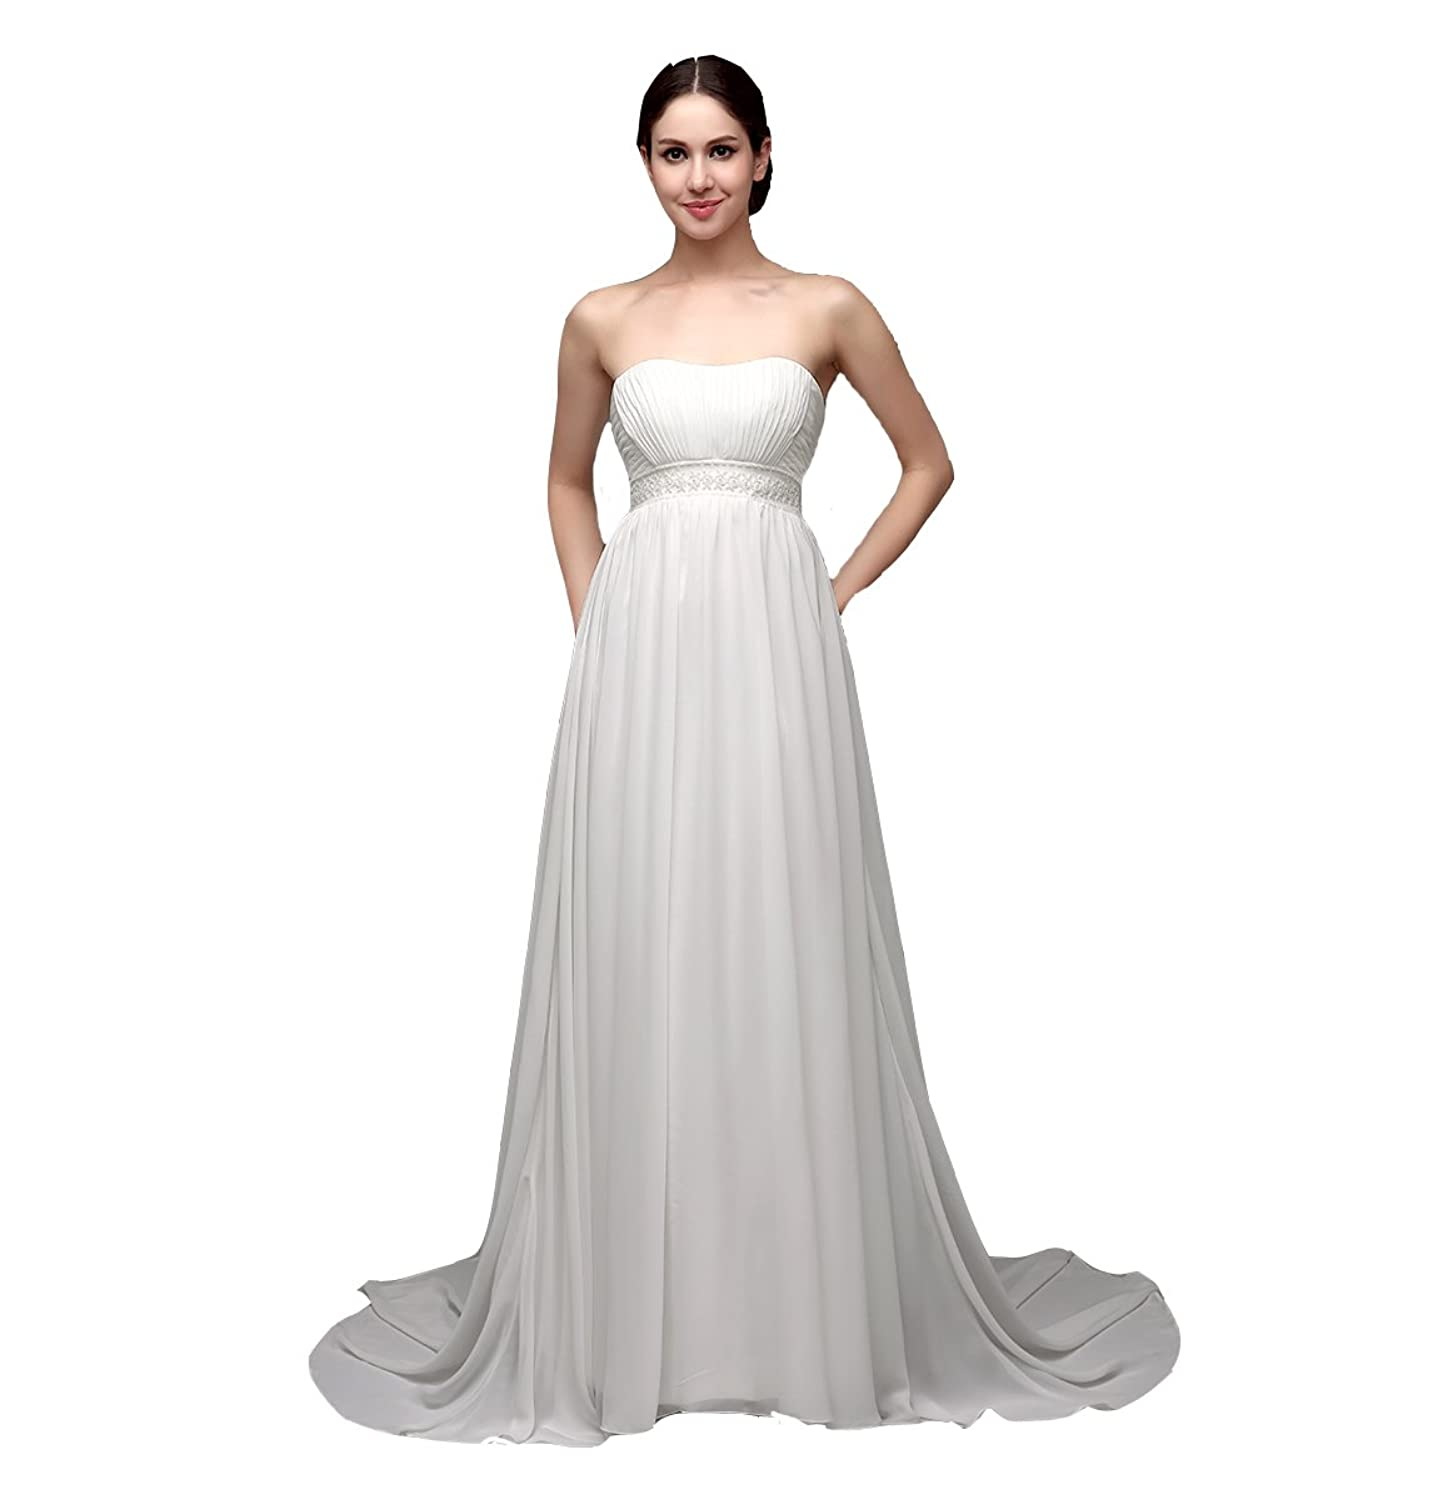 KekeHouse? Chiffon Wedding Dress A-line Strapless for Bride Floor Length Women's Wedding Dress With Train Pearls Sash Decorated